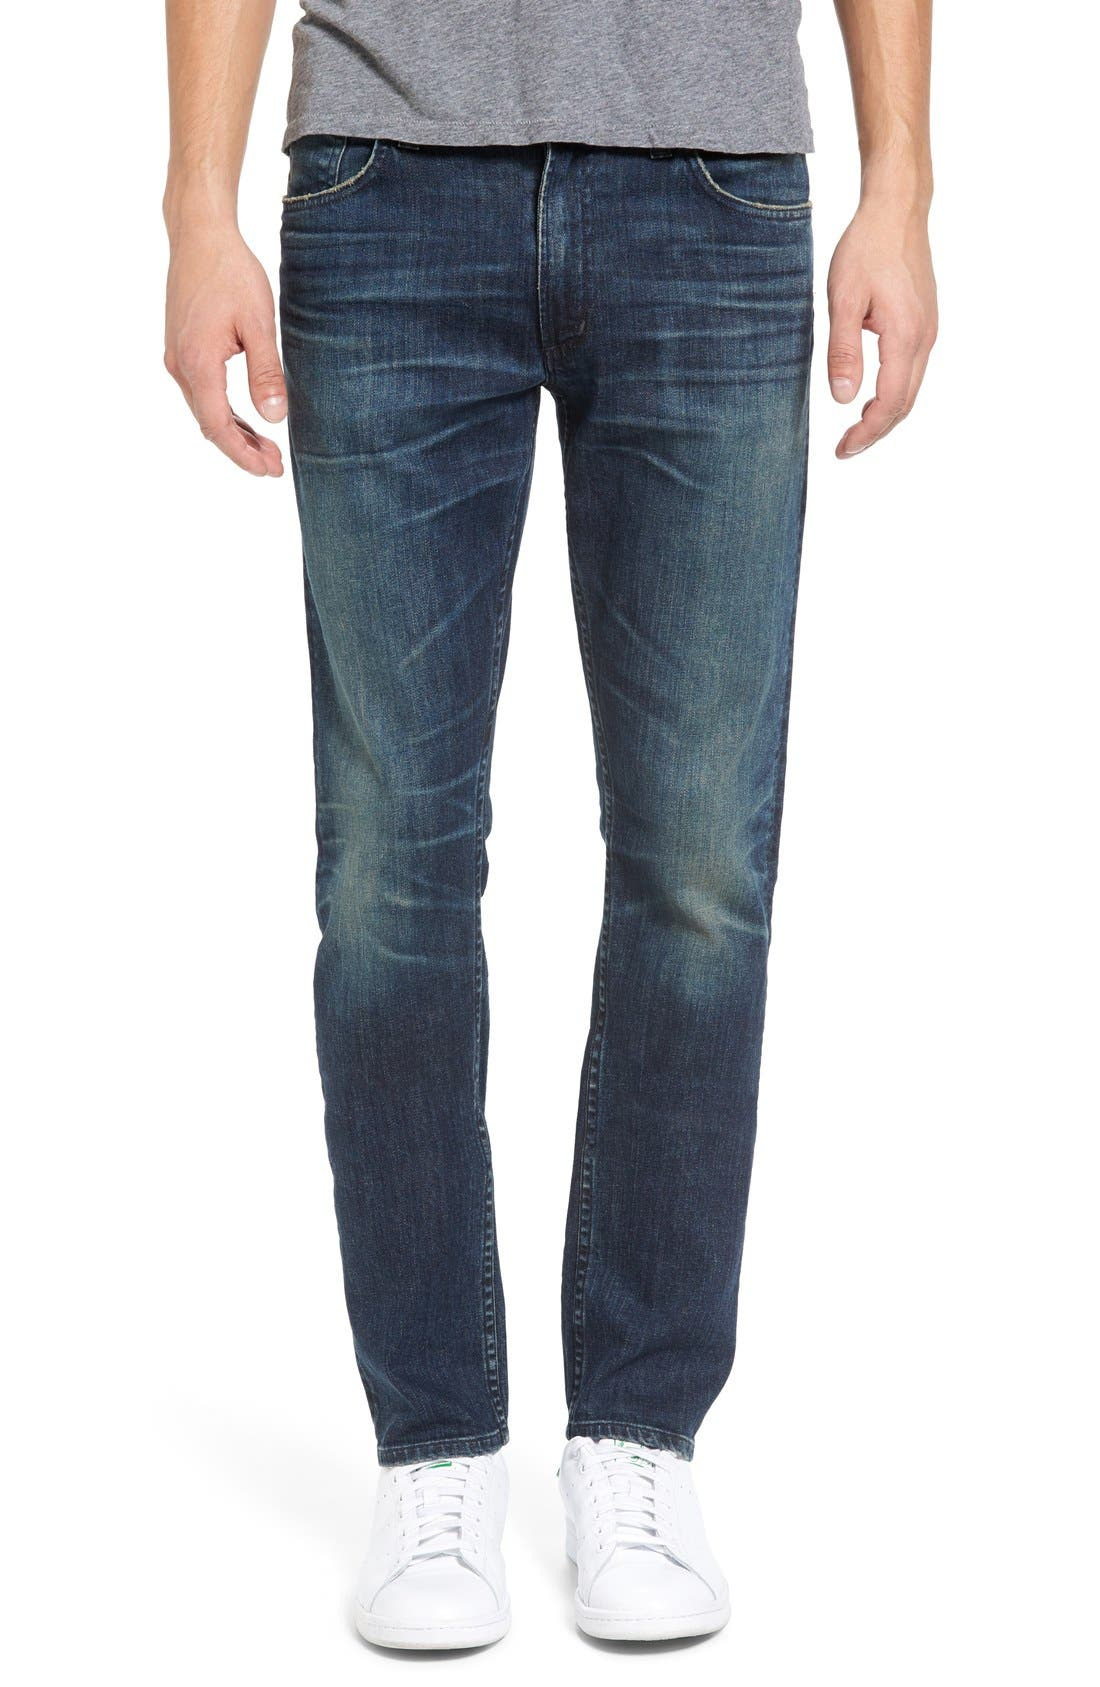 Main Image - Citizens of Humanity Bowery Slim Fit Jeans (Wild)